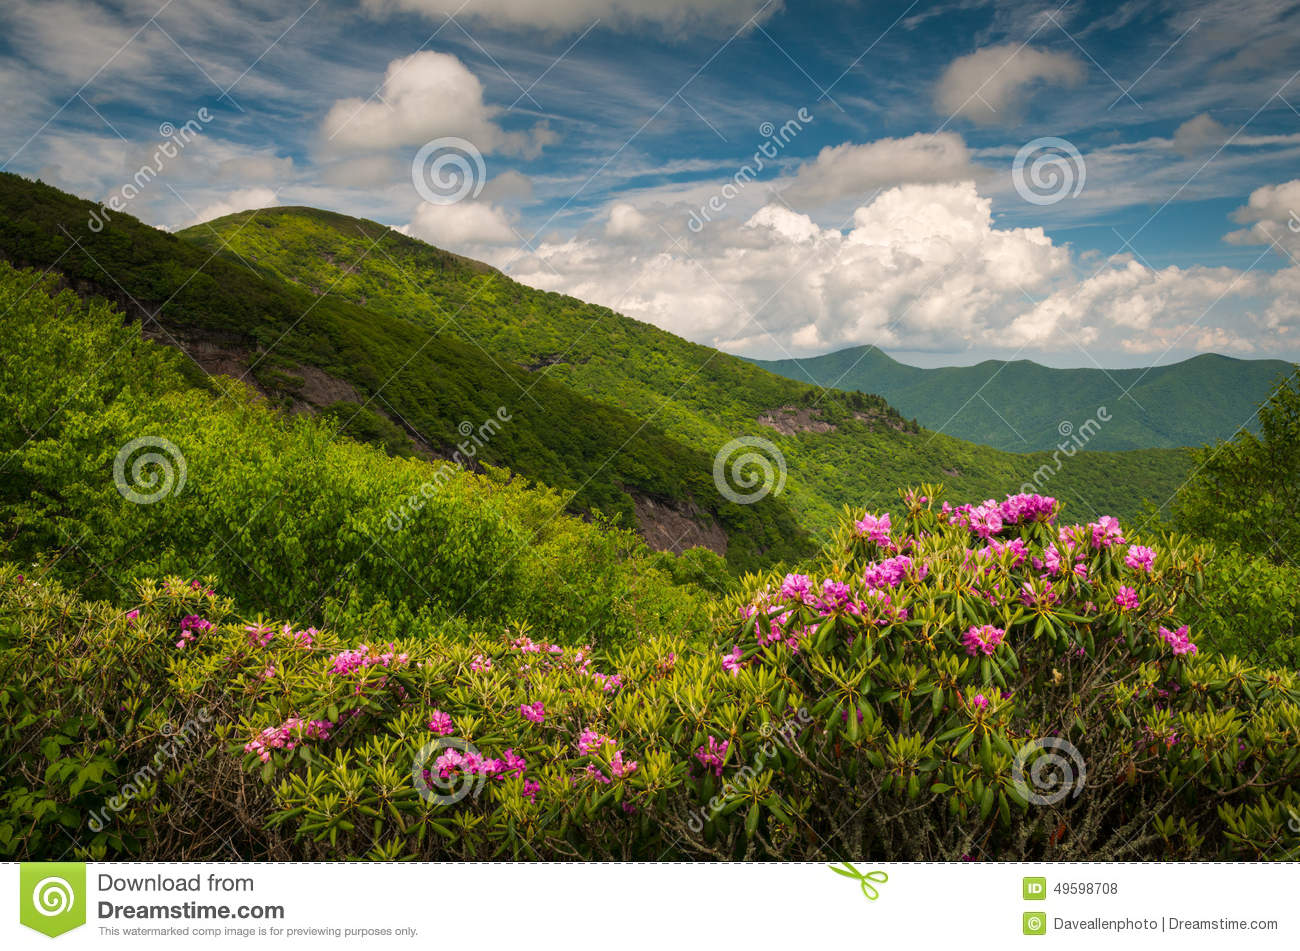 Asheville north carolina blue ridge parkway spring flowers sceni royalty free stock photo download asheville north carolina blue ridge parkway spring flowers dhlflorist Image collections